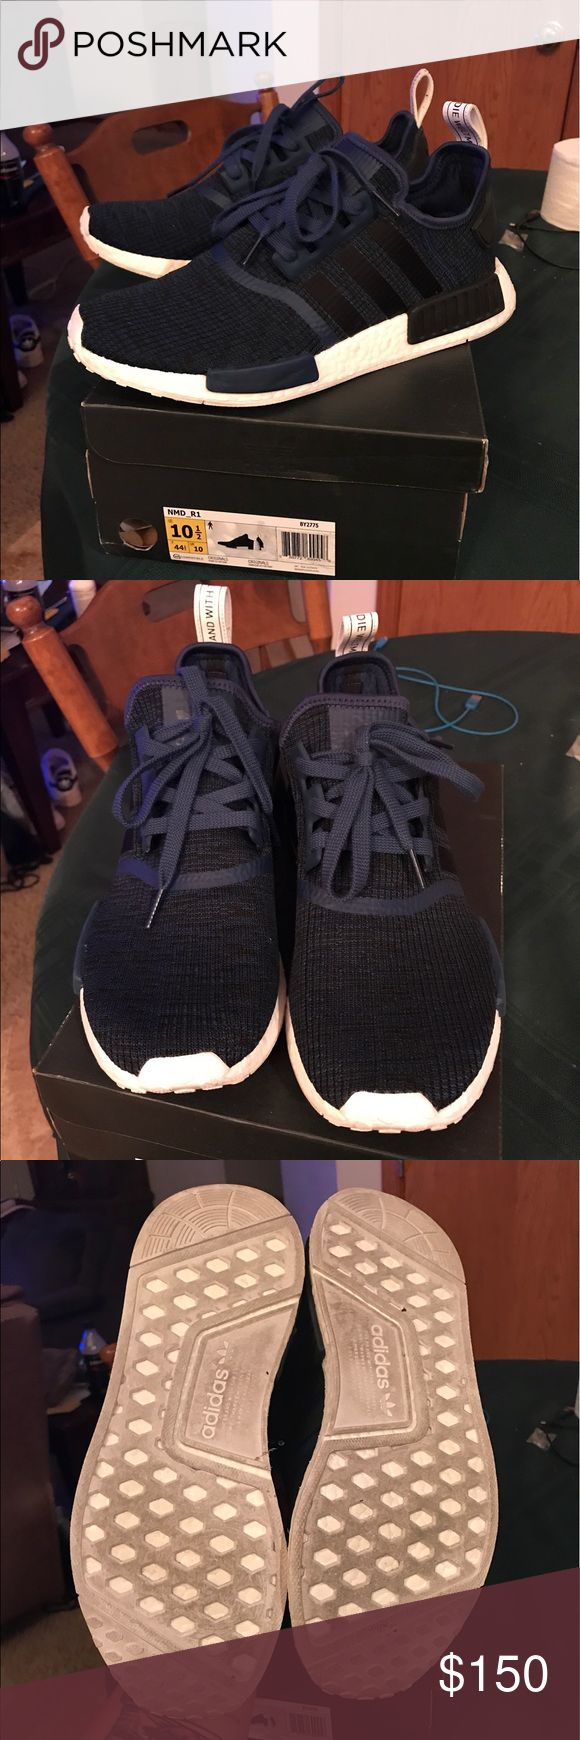 Adidas NMD R1 Size 10.5. I just purchased these are wore them one time. They are the most comfortable shoes I have ever worn. Just not my style unfortunately. The come with the original box. They are 100% authentic shoes. I am just trying not to lose a lot of money on them so be fair. I paid $165 including shipping.  PRICE IS FIRM ON THESE. JUST TRYING NOT TO LOSE ALOT OF MONEY ON THEM. adidas Shoes Sneakers